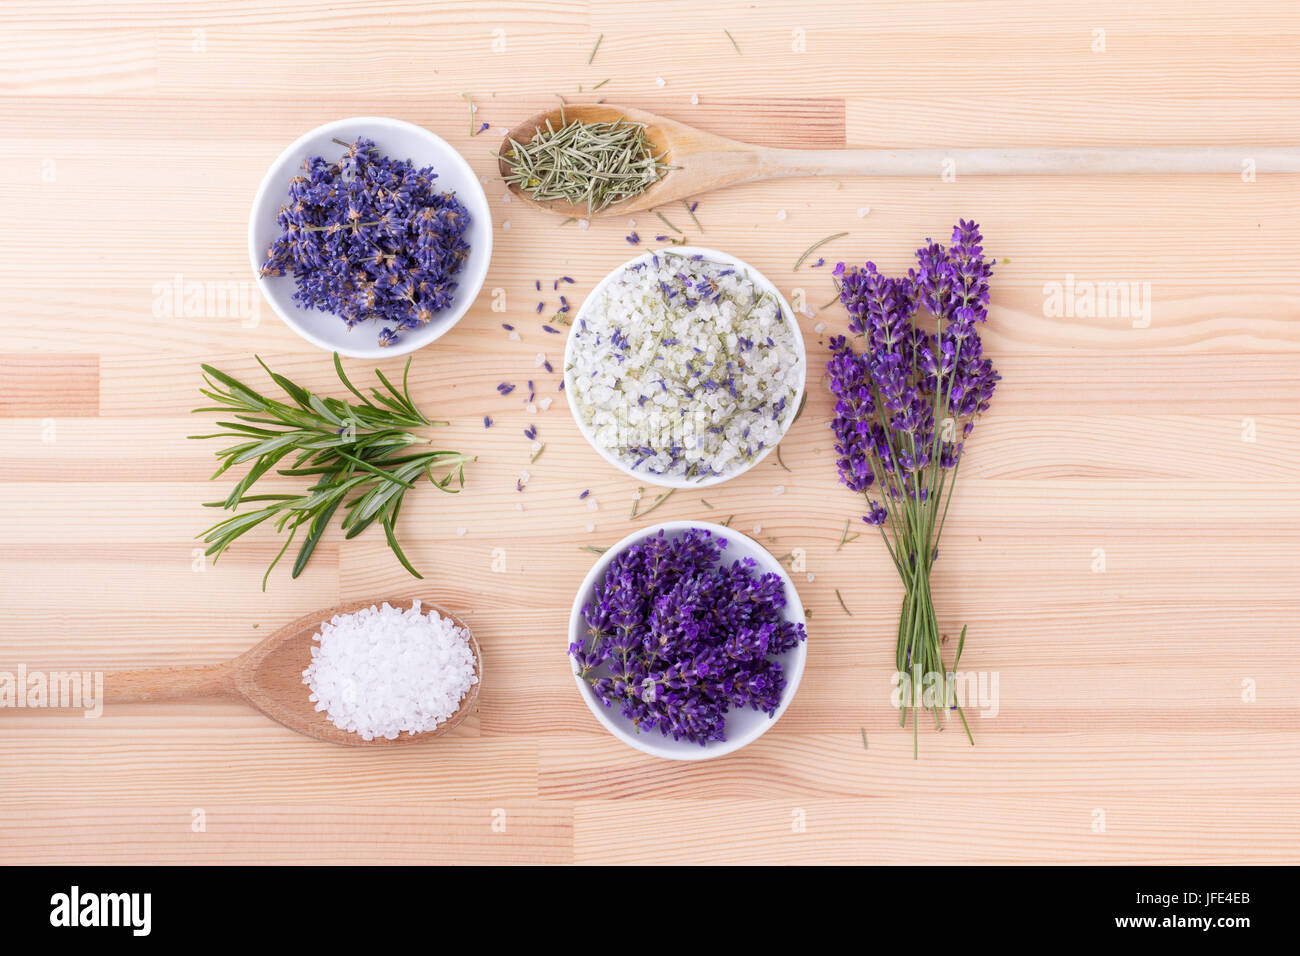 Herb salt of rosemary and lavender blossoms - Stock Image